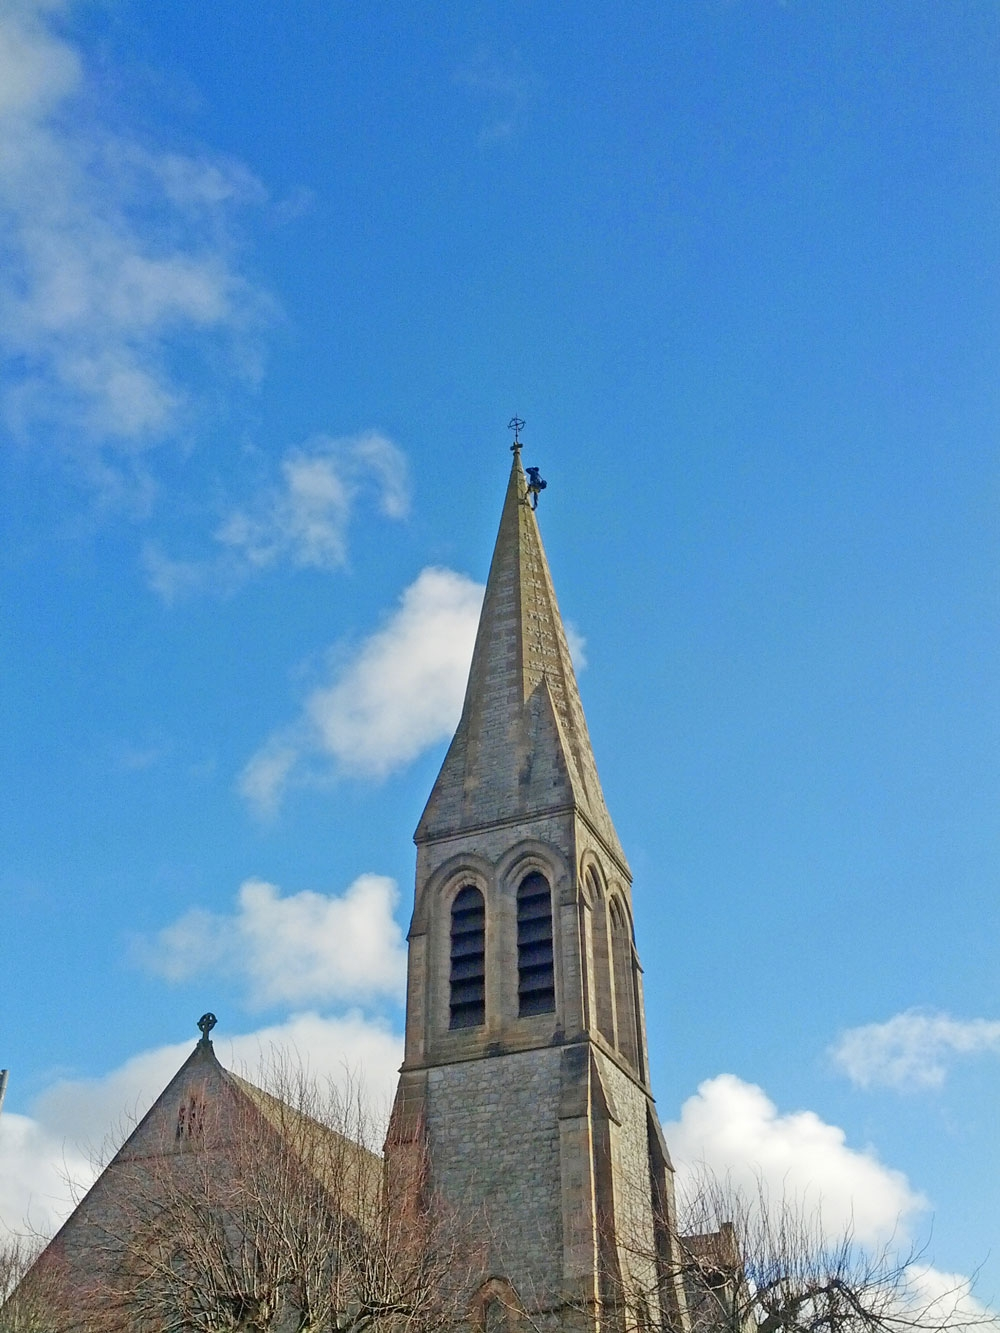 Church spire inspection